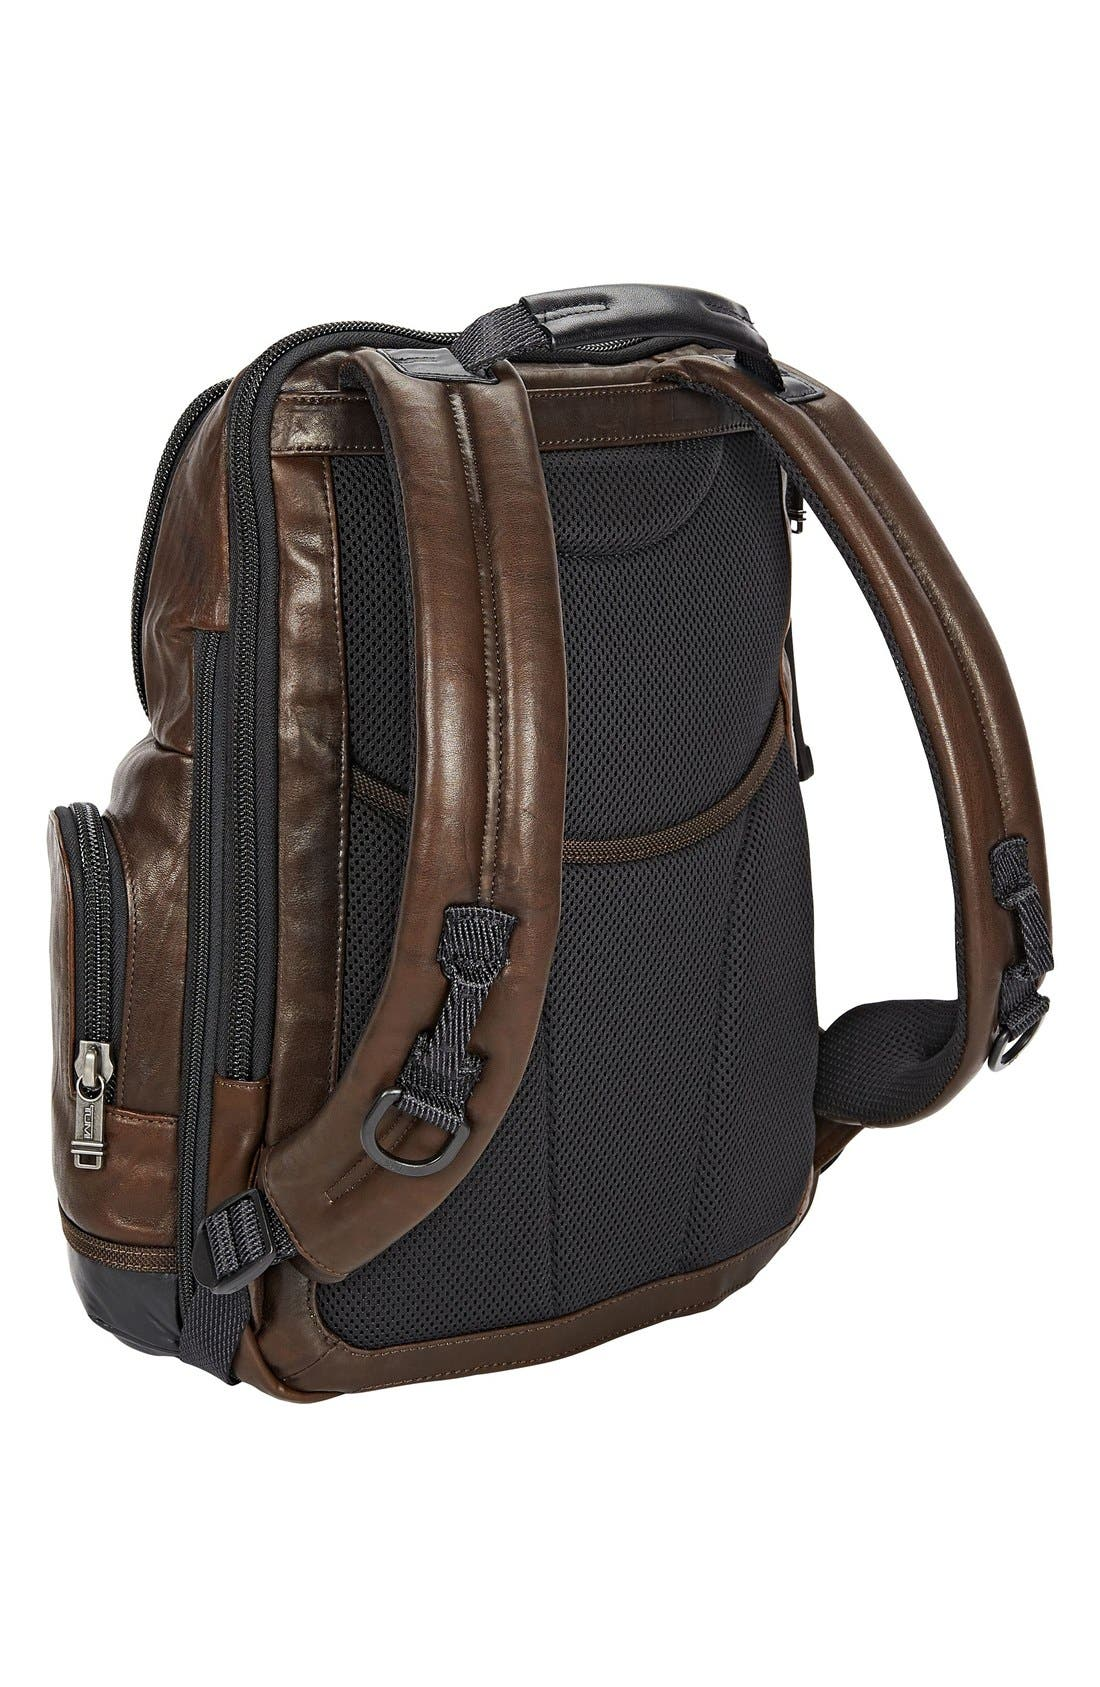 'Bravo - Knox' Leather Backpack,                             Alternate thumbnail 6, color,                             204